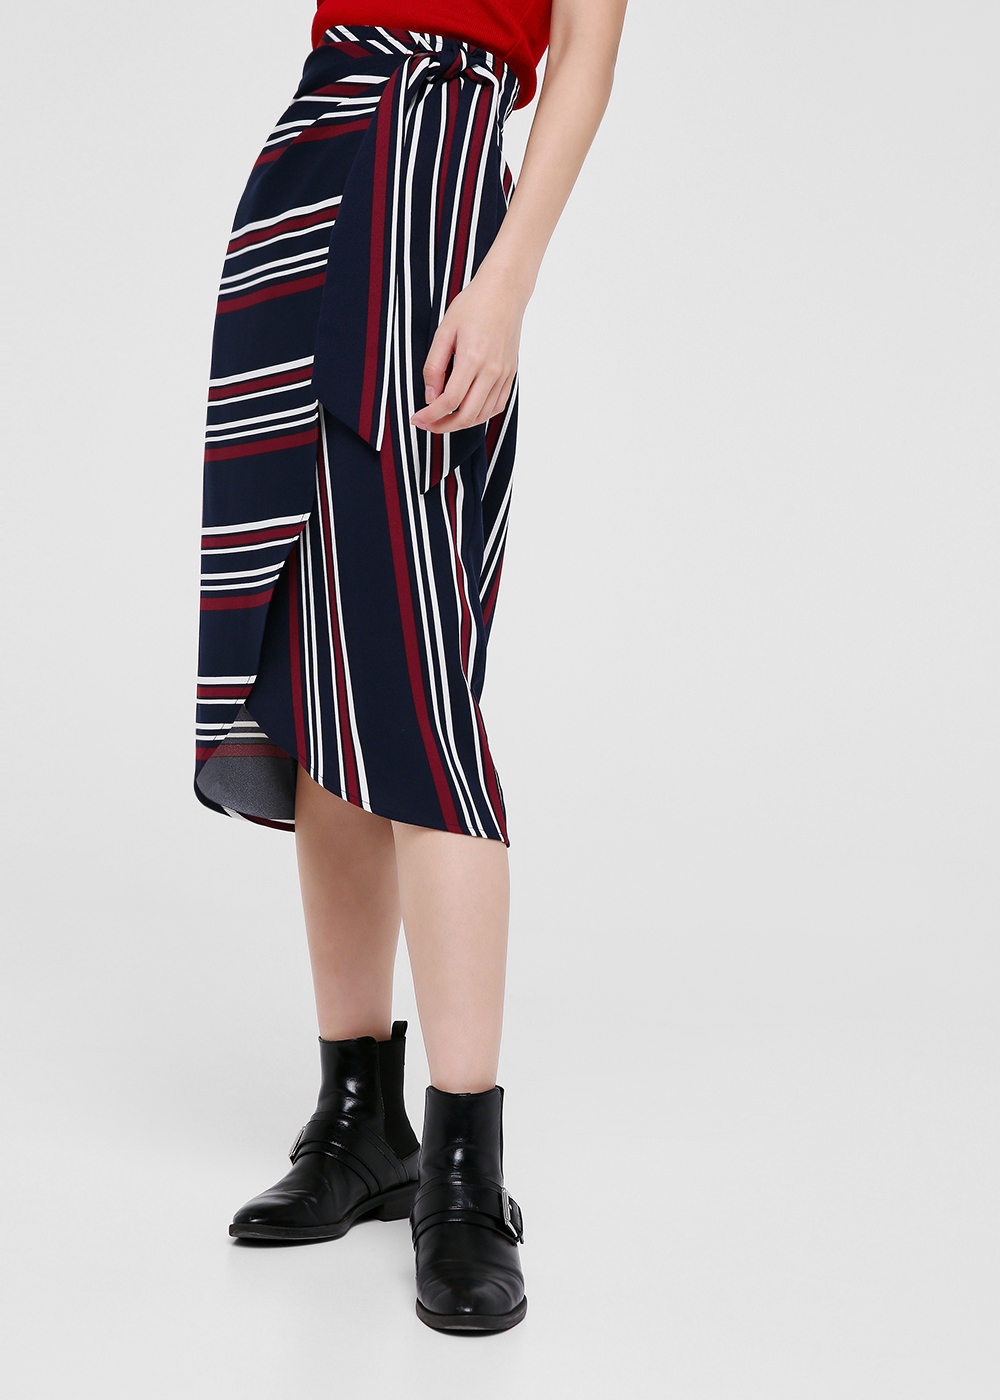 Joslyn Striped Wrap Skirt